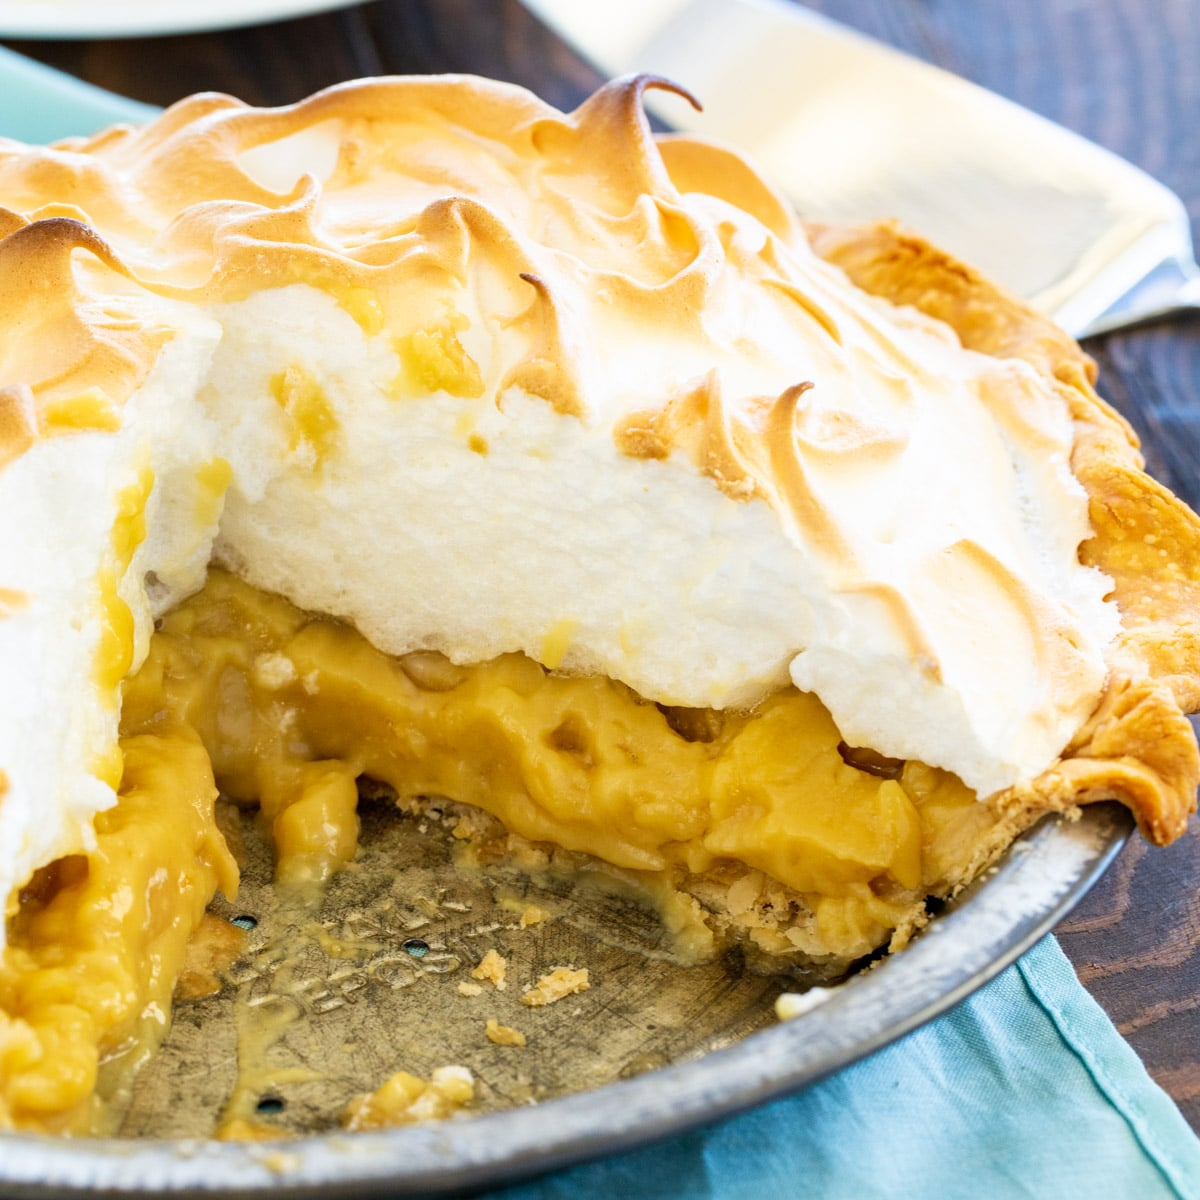 Butterscotch Pudding Pie with a slice cut out.